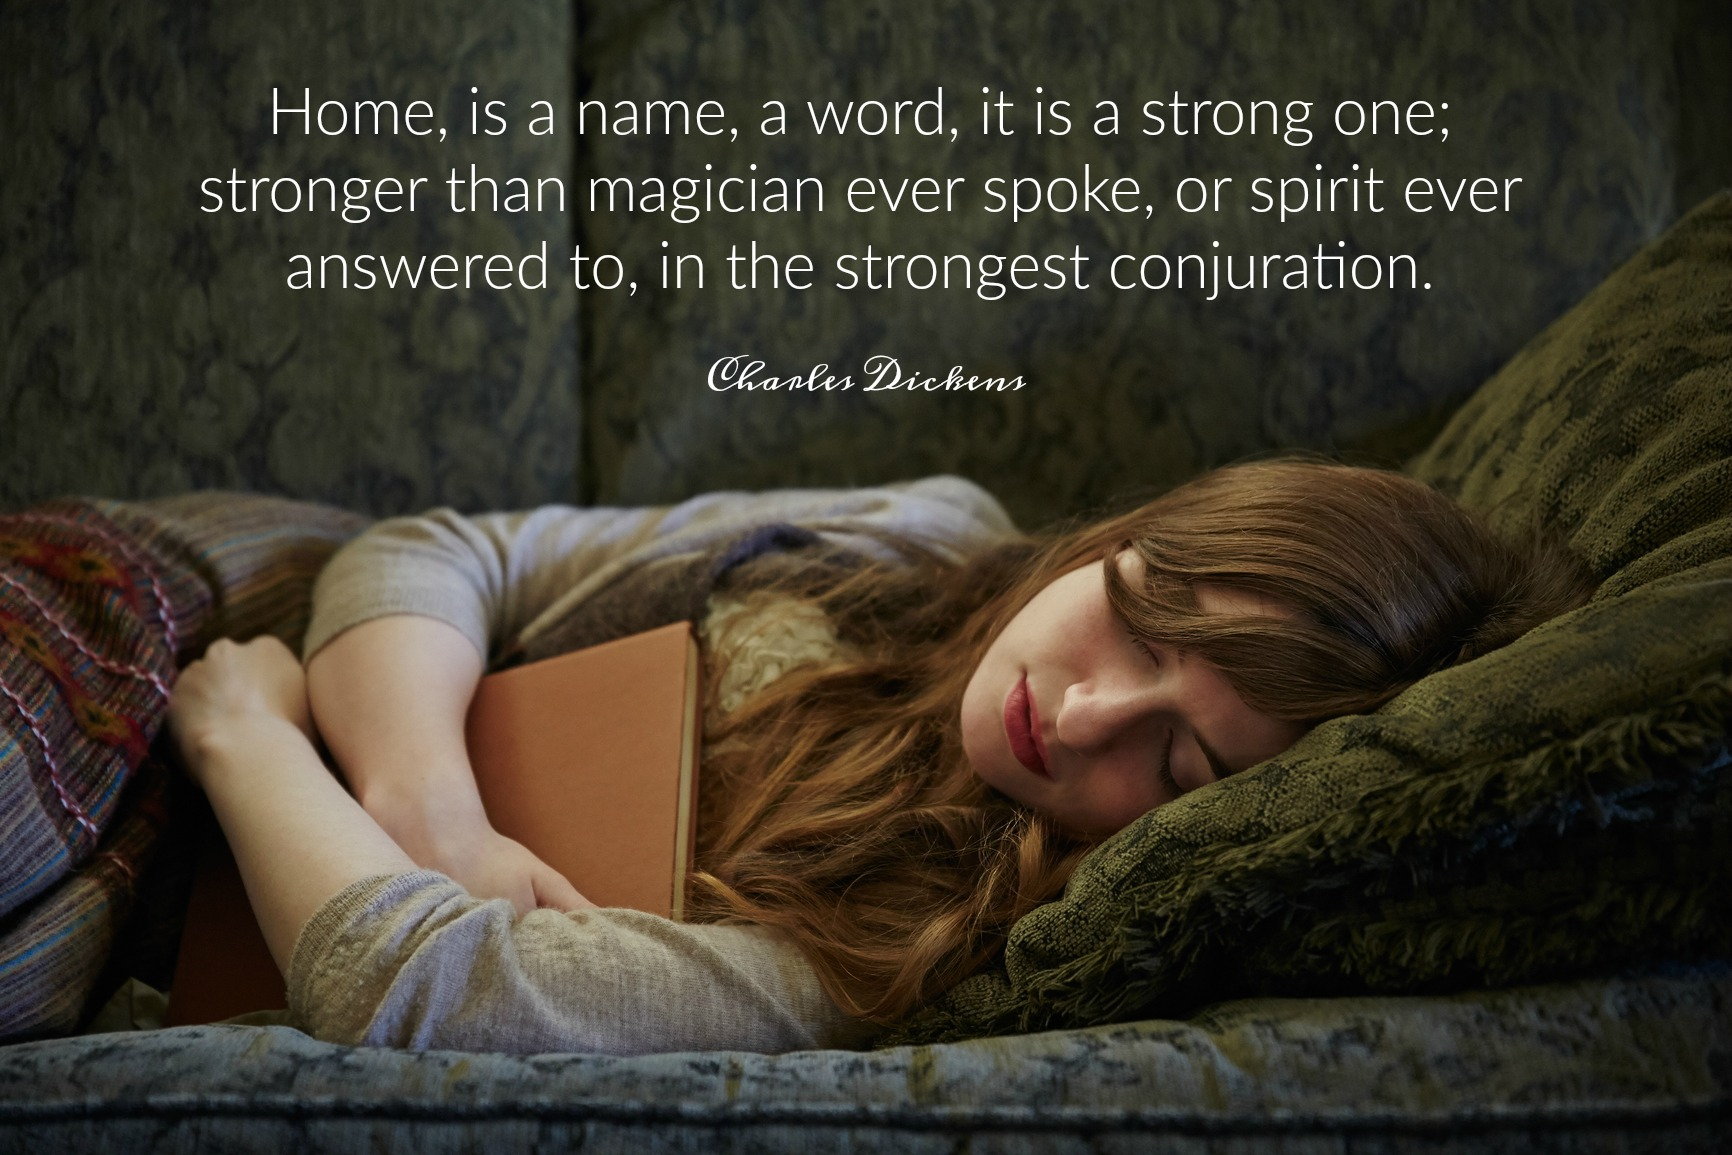 """Home, is a name, a word, it is a strong one; stronger than magician ever spoke, or spirit ever answered to, in the strongest conjuration."" Charles Dickens. Circle of Daydreams. www.circleofdaydreams.com"